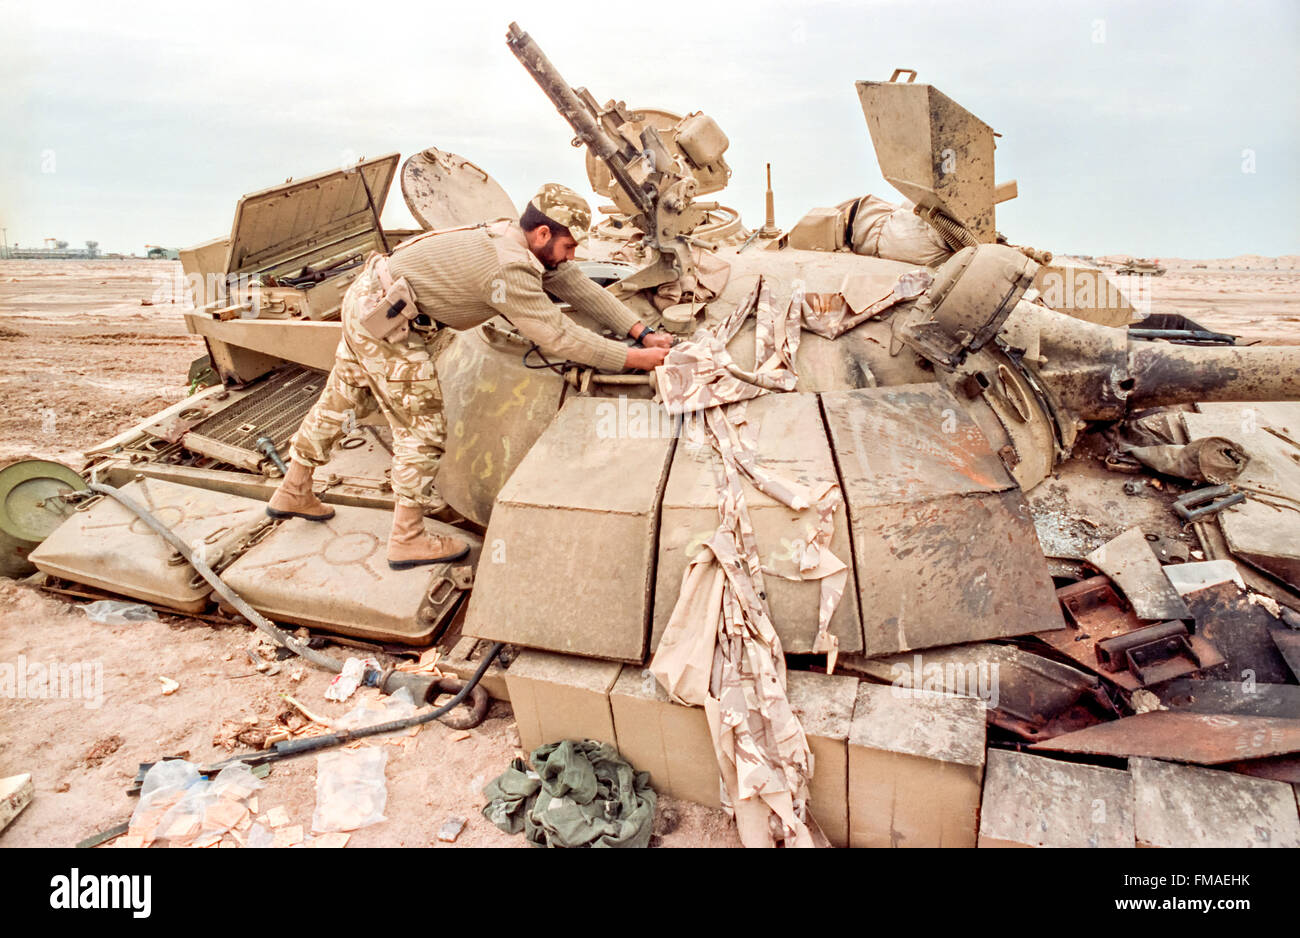 A Qatar soldier examines a destroyed Iraqi T-55 battle tank during clean up operations following the Battle of Khafji - Stock Image